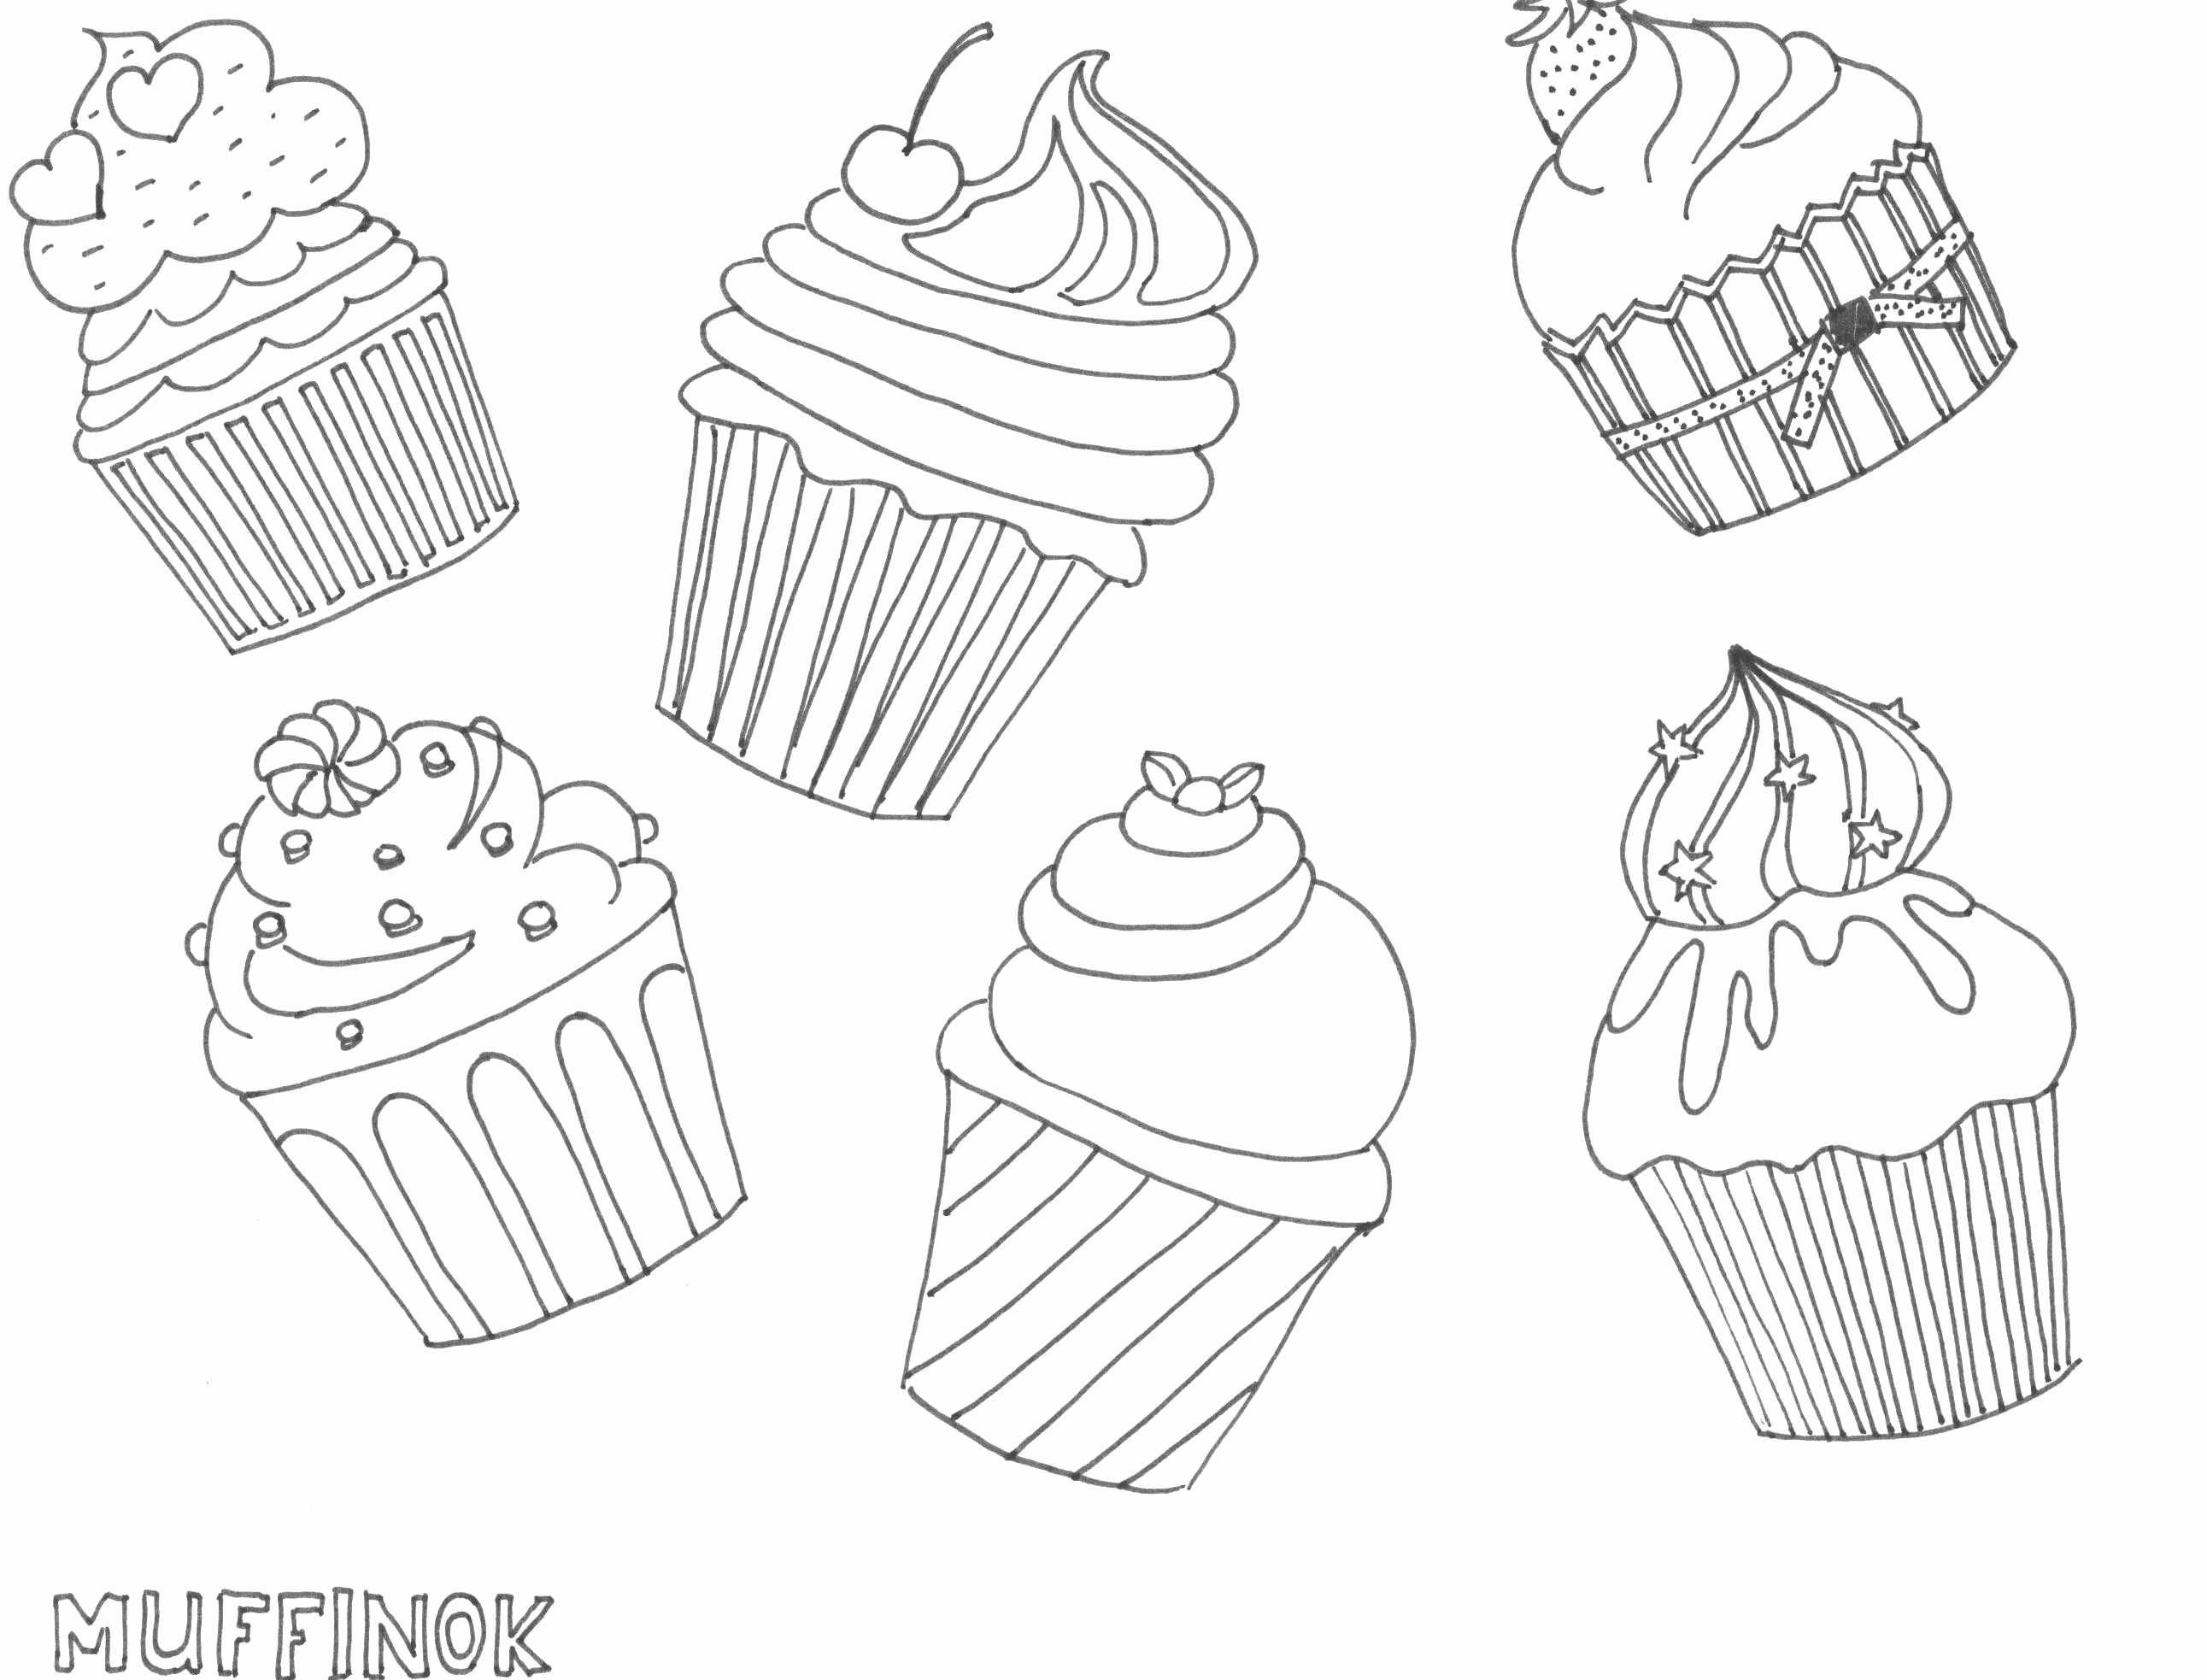 Muffin Rajz Drawing Muffin Coloring Page Szinezo Colorful Drawings Drawing Quotes Drawings